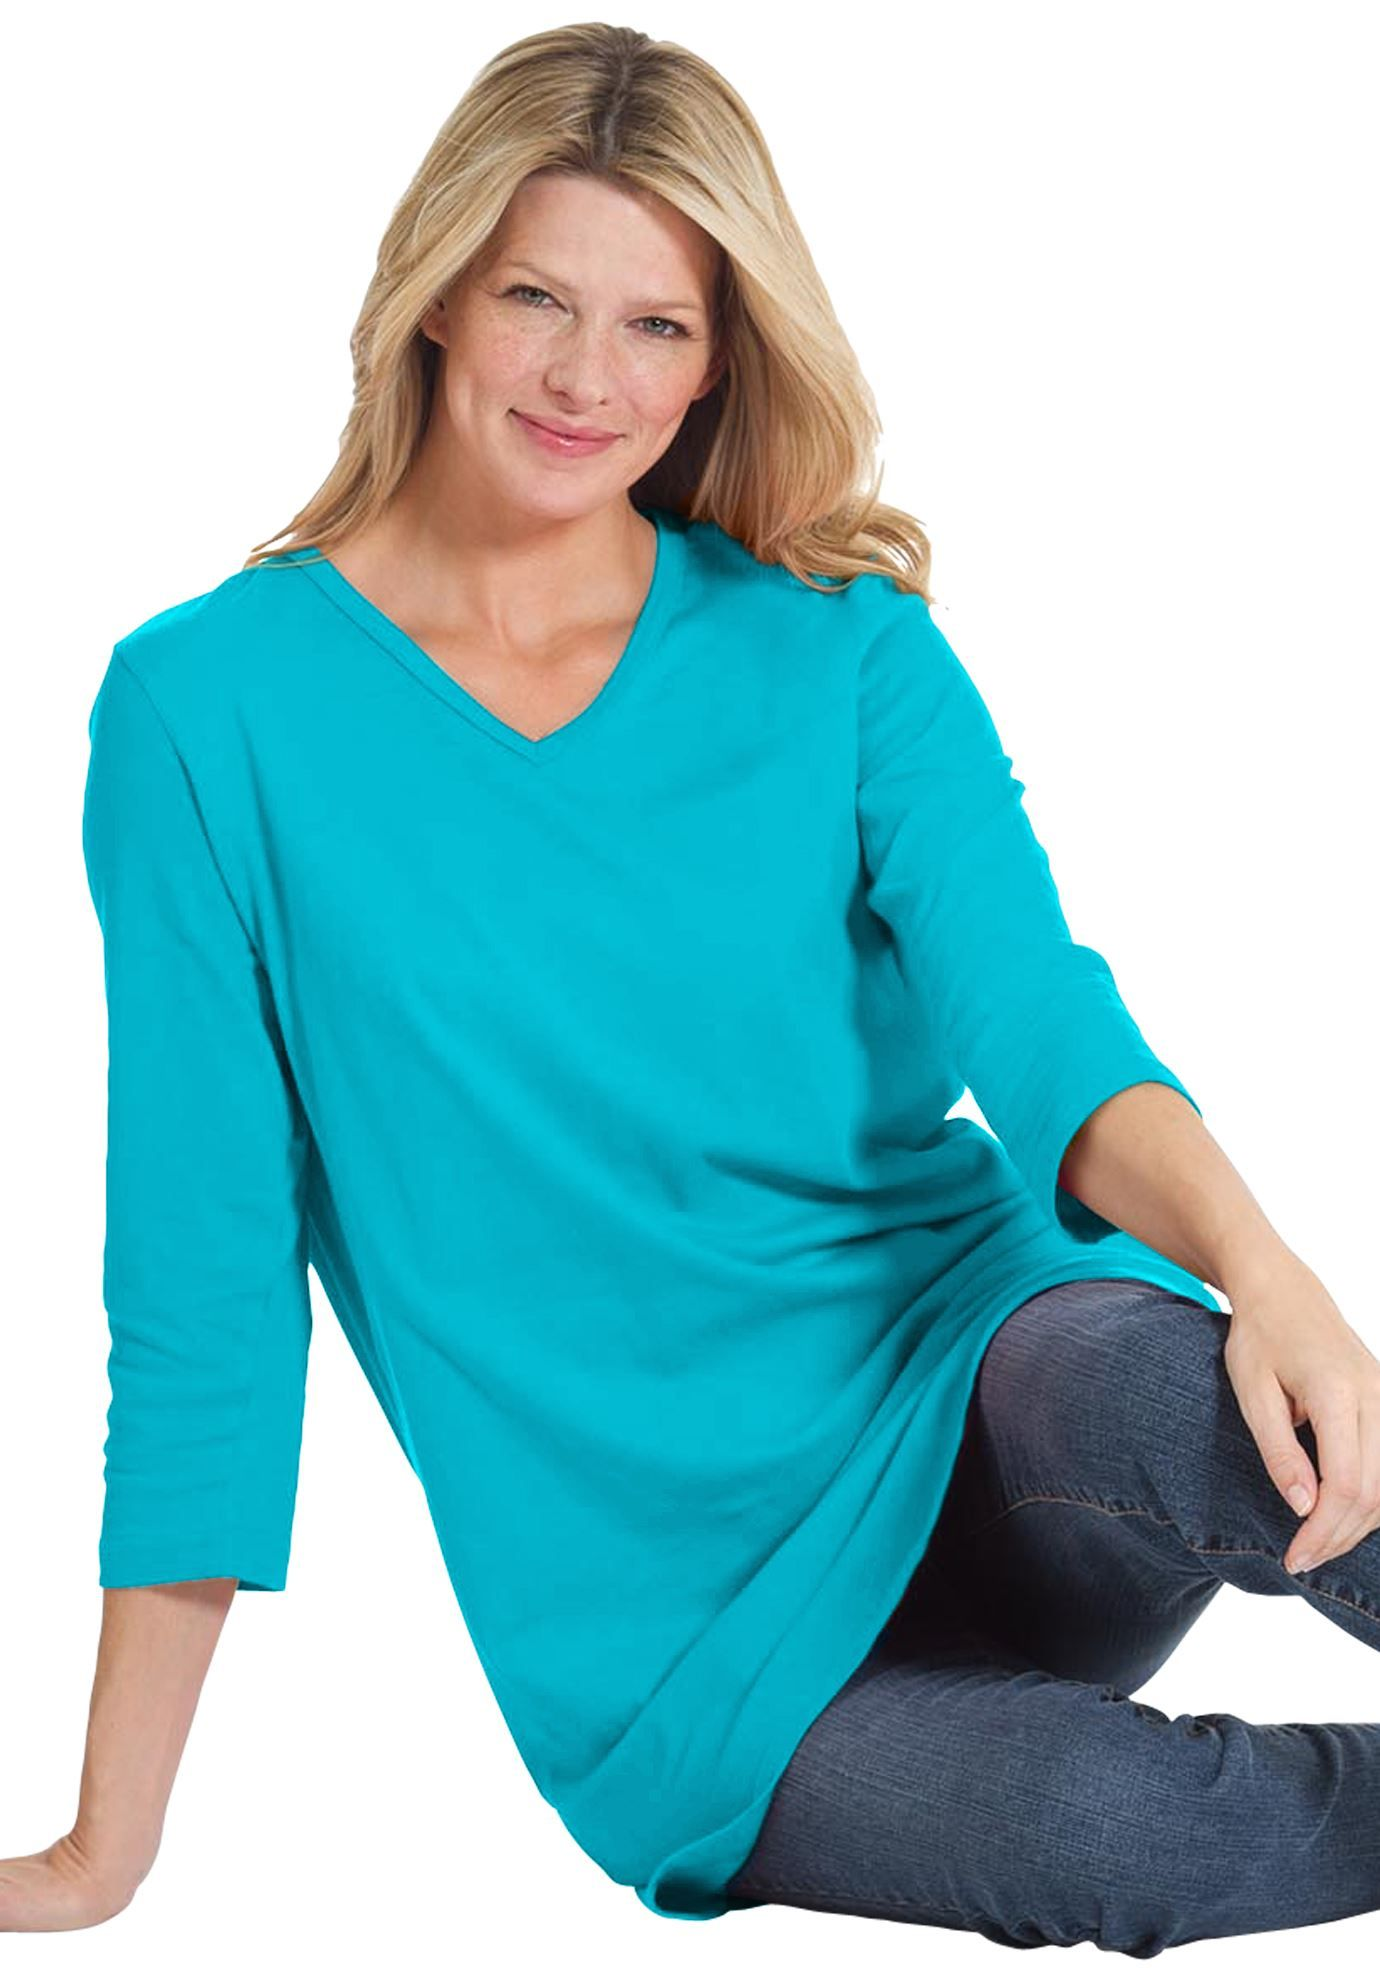 8113ddc7e1ea6 Among our Perfect plus size tops in soft cotton knit